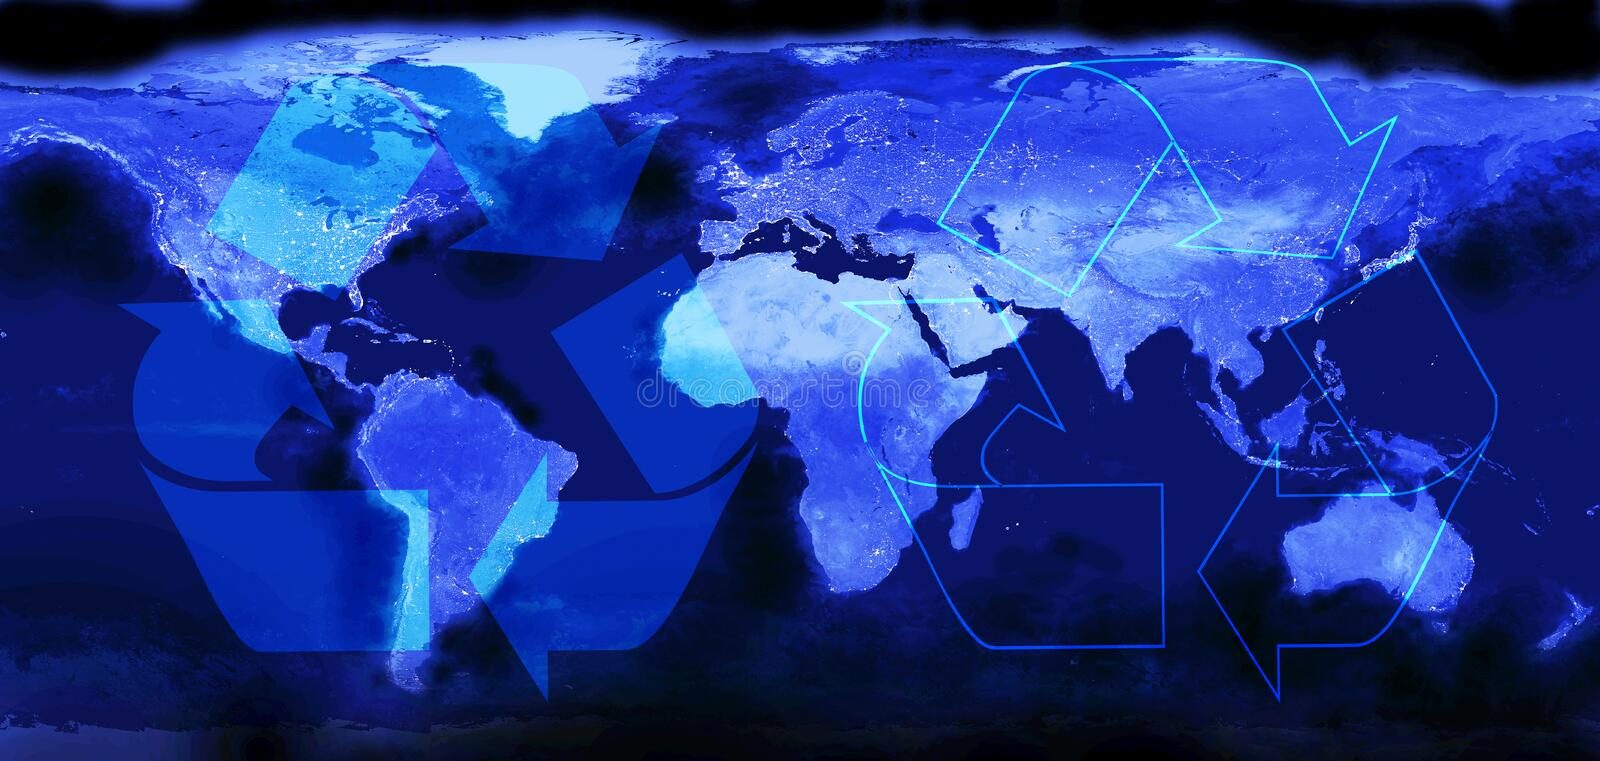 World map.  Recycling symbol. Preserving the world`s environment. Concept recycle - reduce - reuse. Panoramic image royalty free illustration